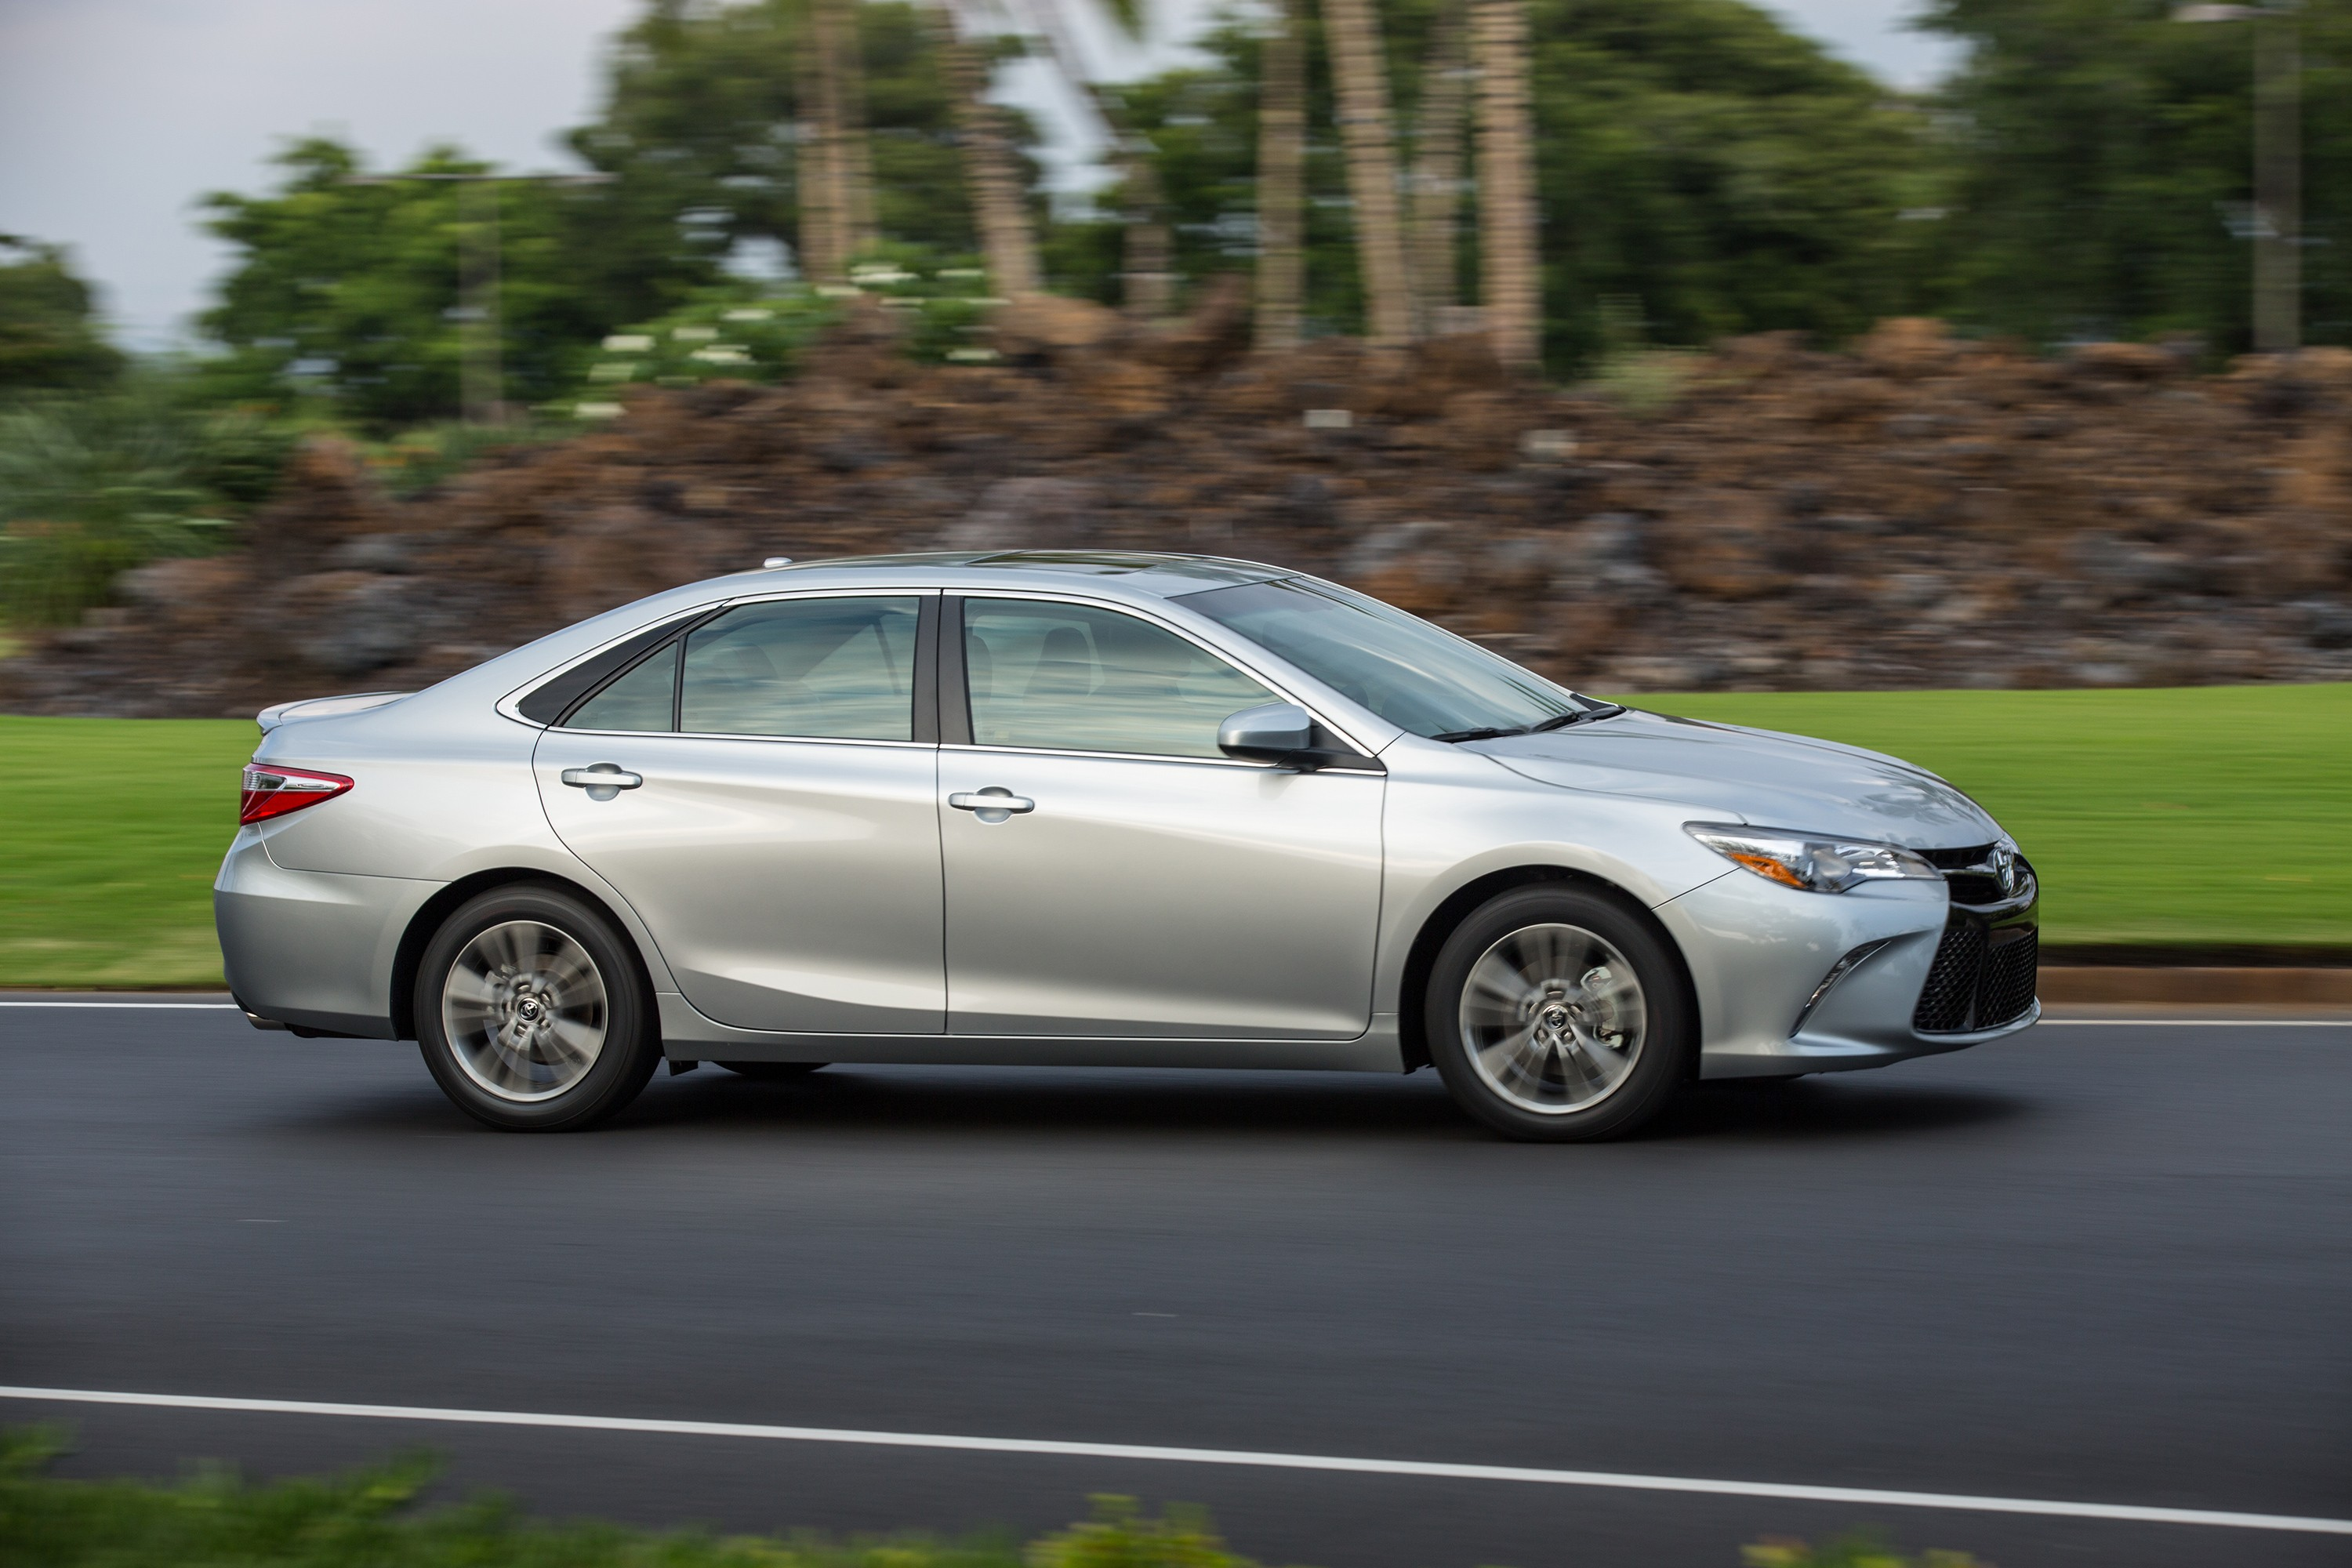 camry just the expected pin wallpaper red yaris toyota revealed models some pinterest model year for updates and rear including